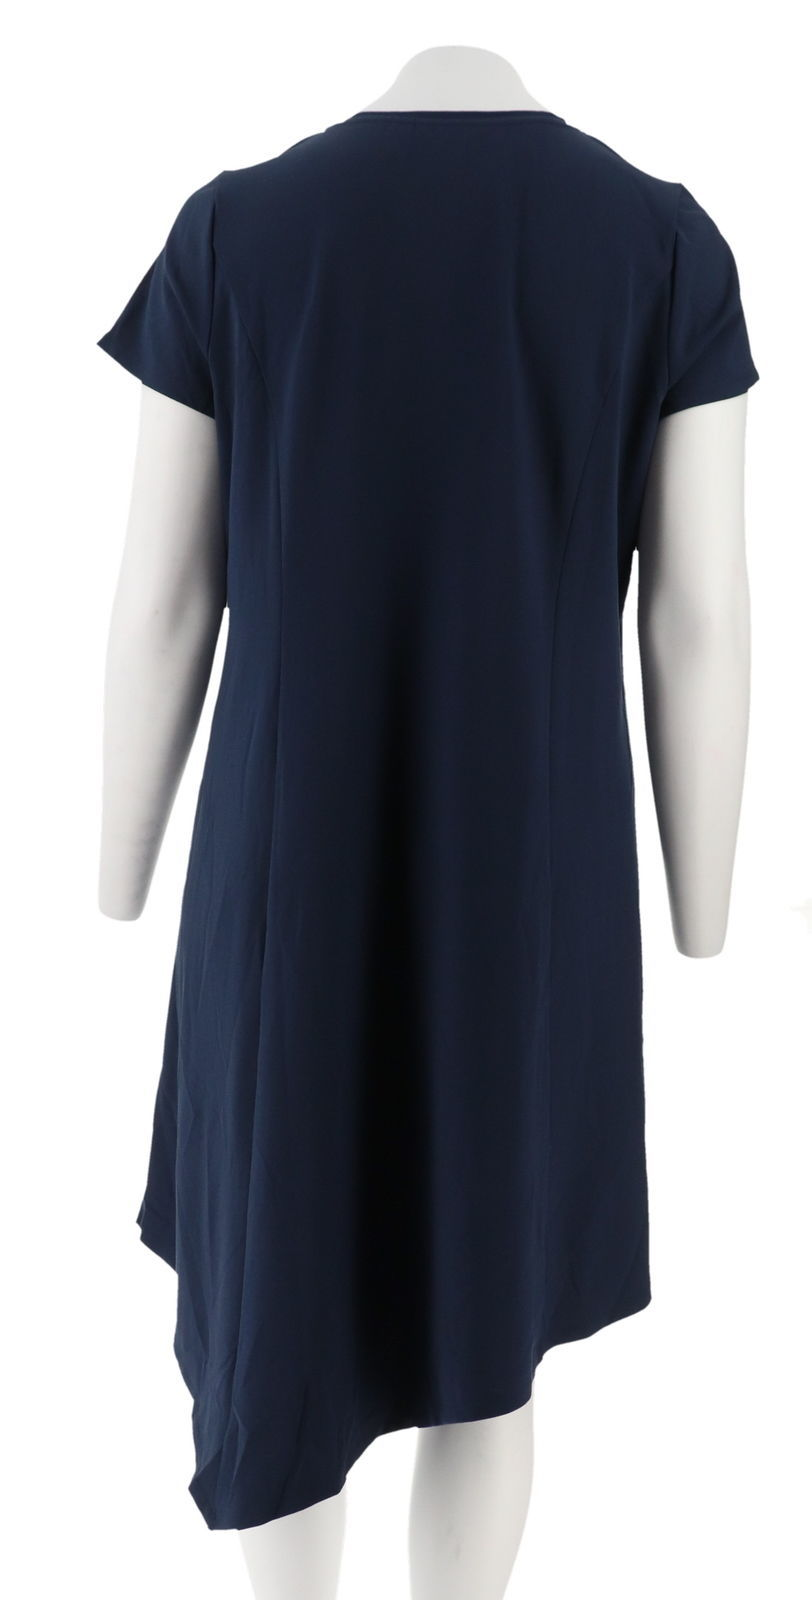 H Halston Crepe Knit Midi Dress Asymmetric Hem Navy M NEW A305390